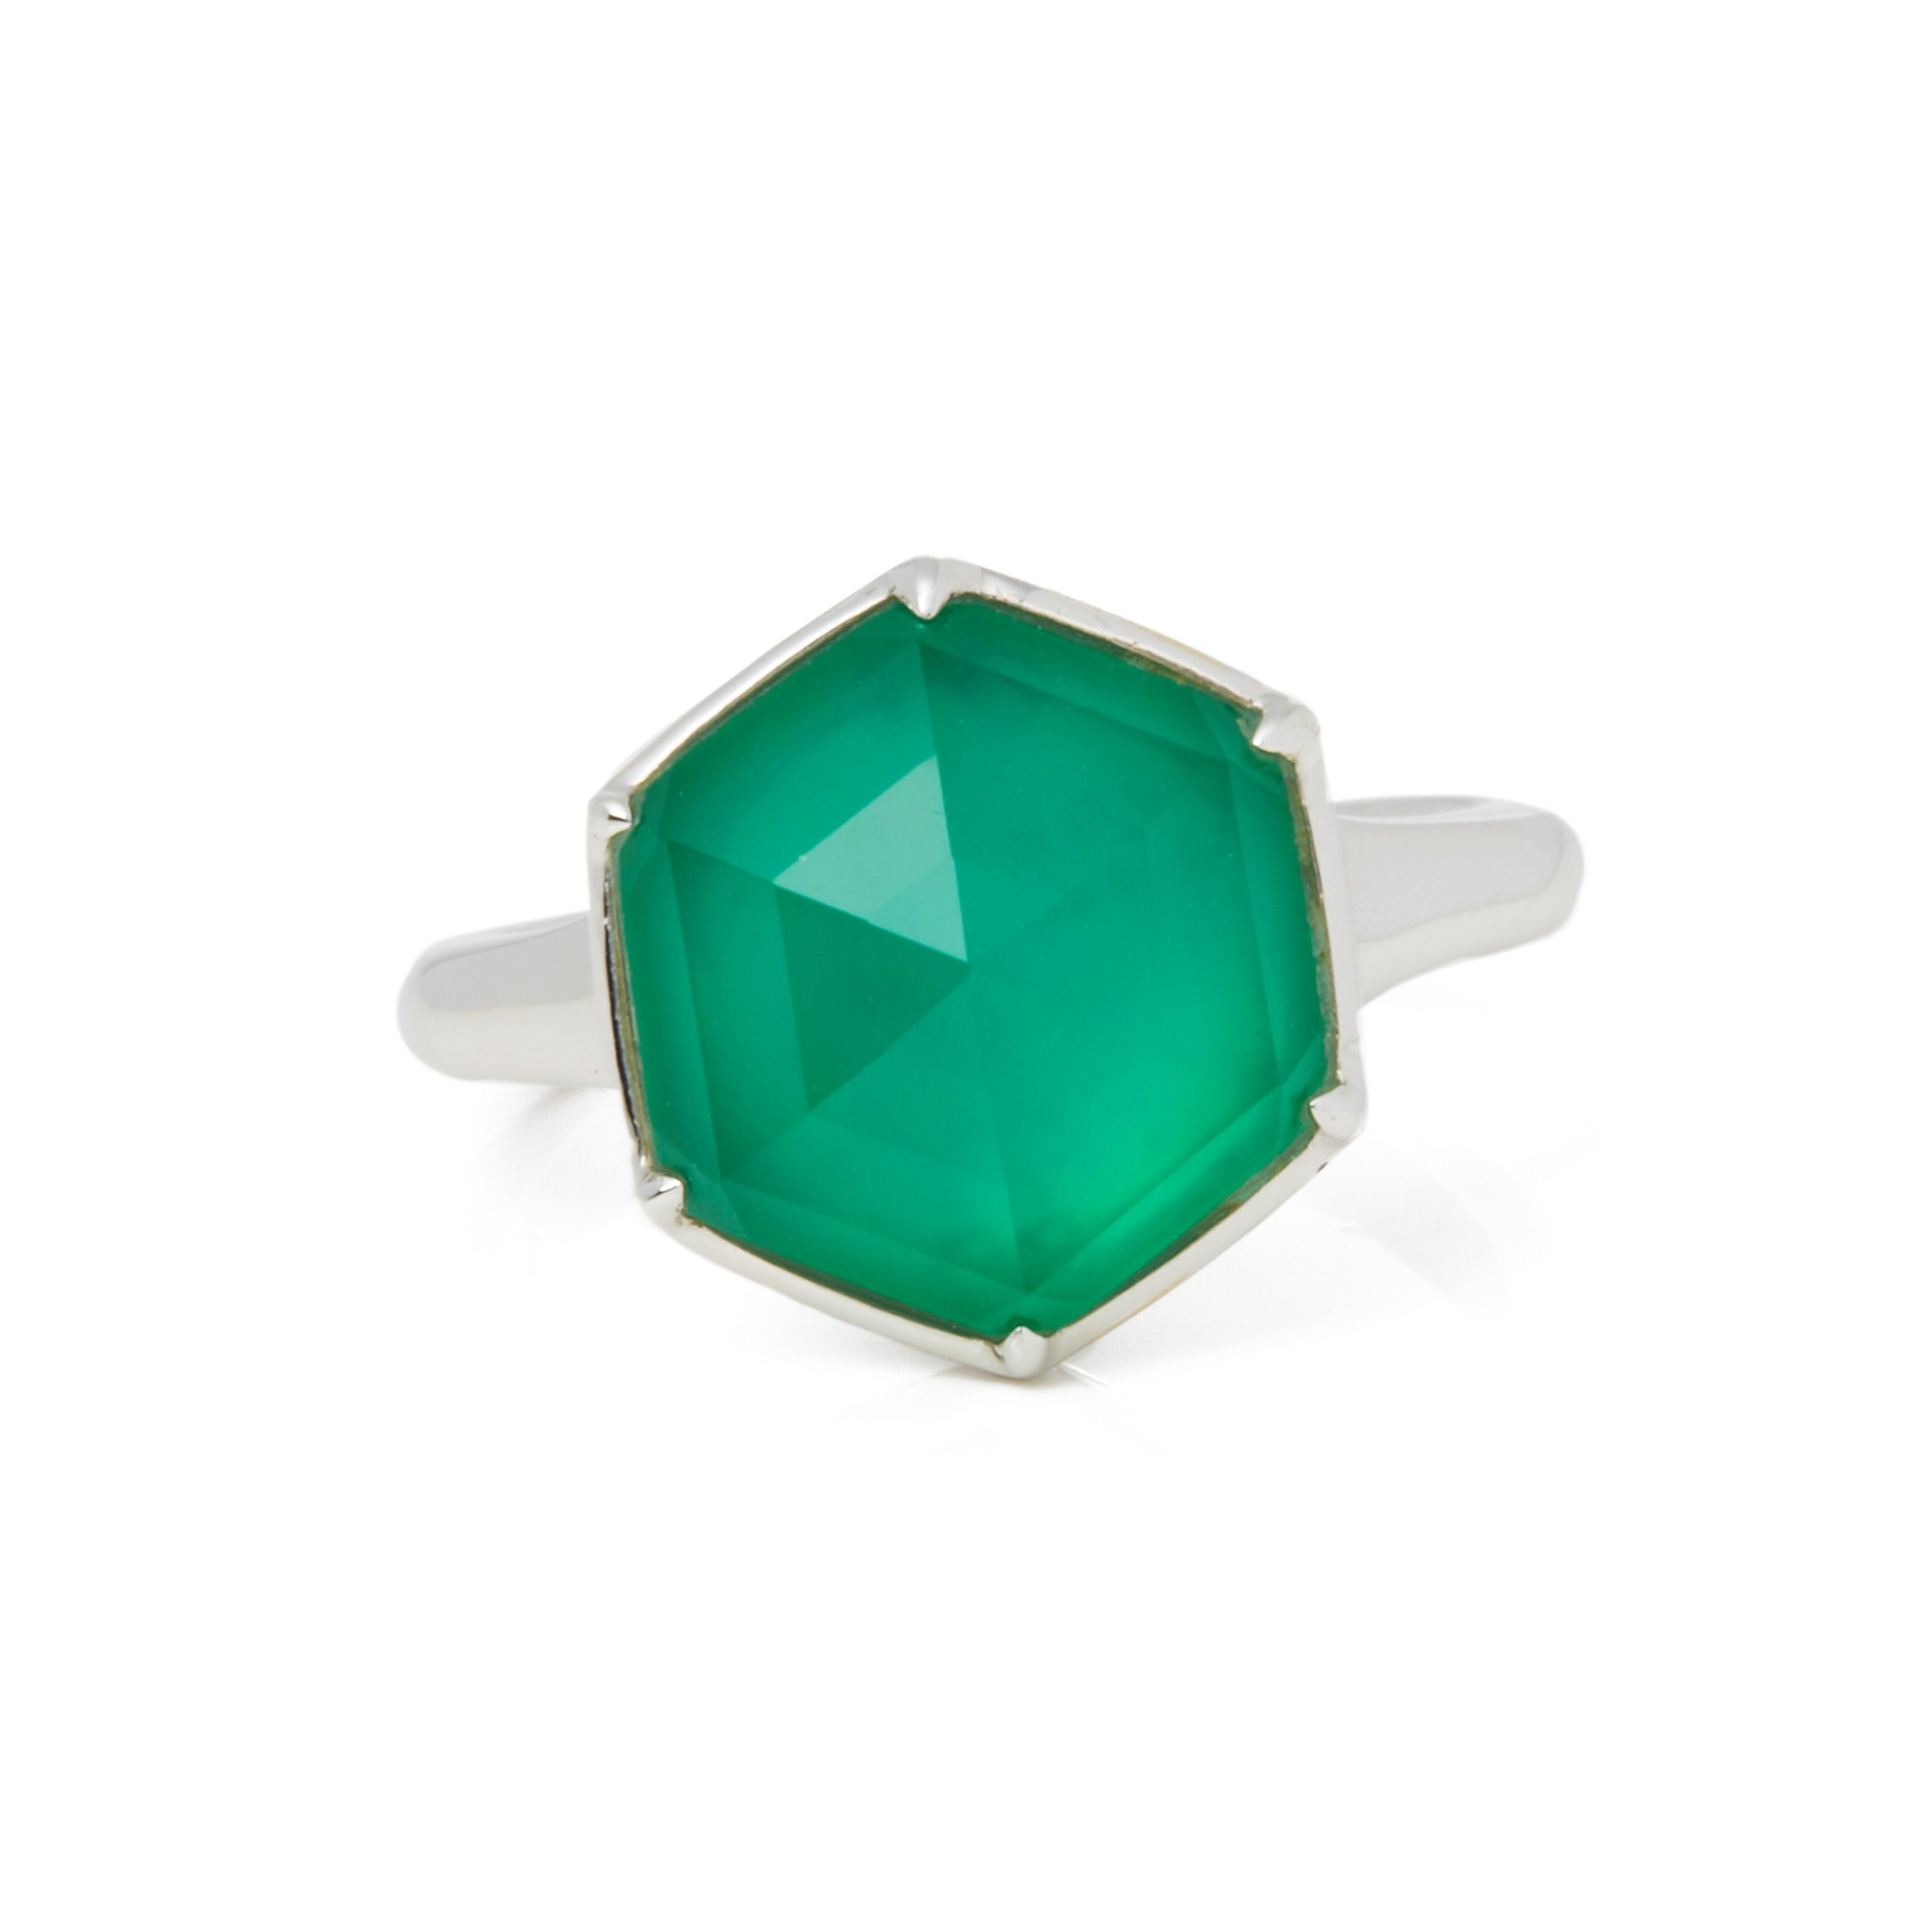 Stephen Webster Deco Haze 18ct White Gold Green Agate Quartz Ring